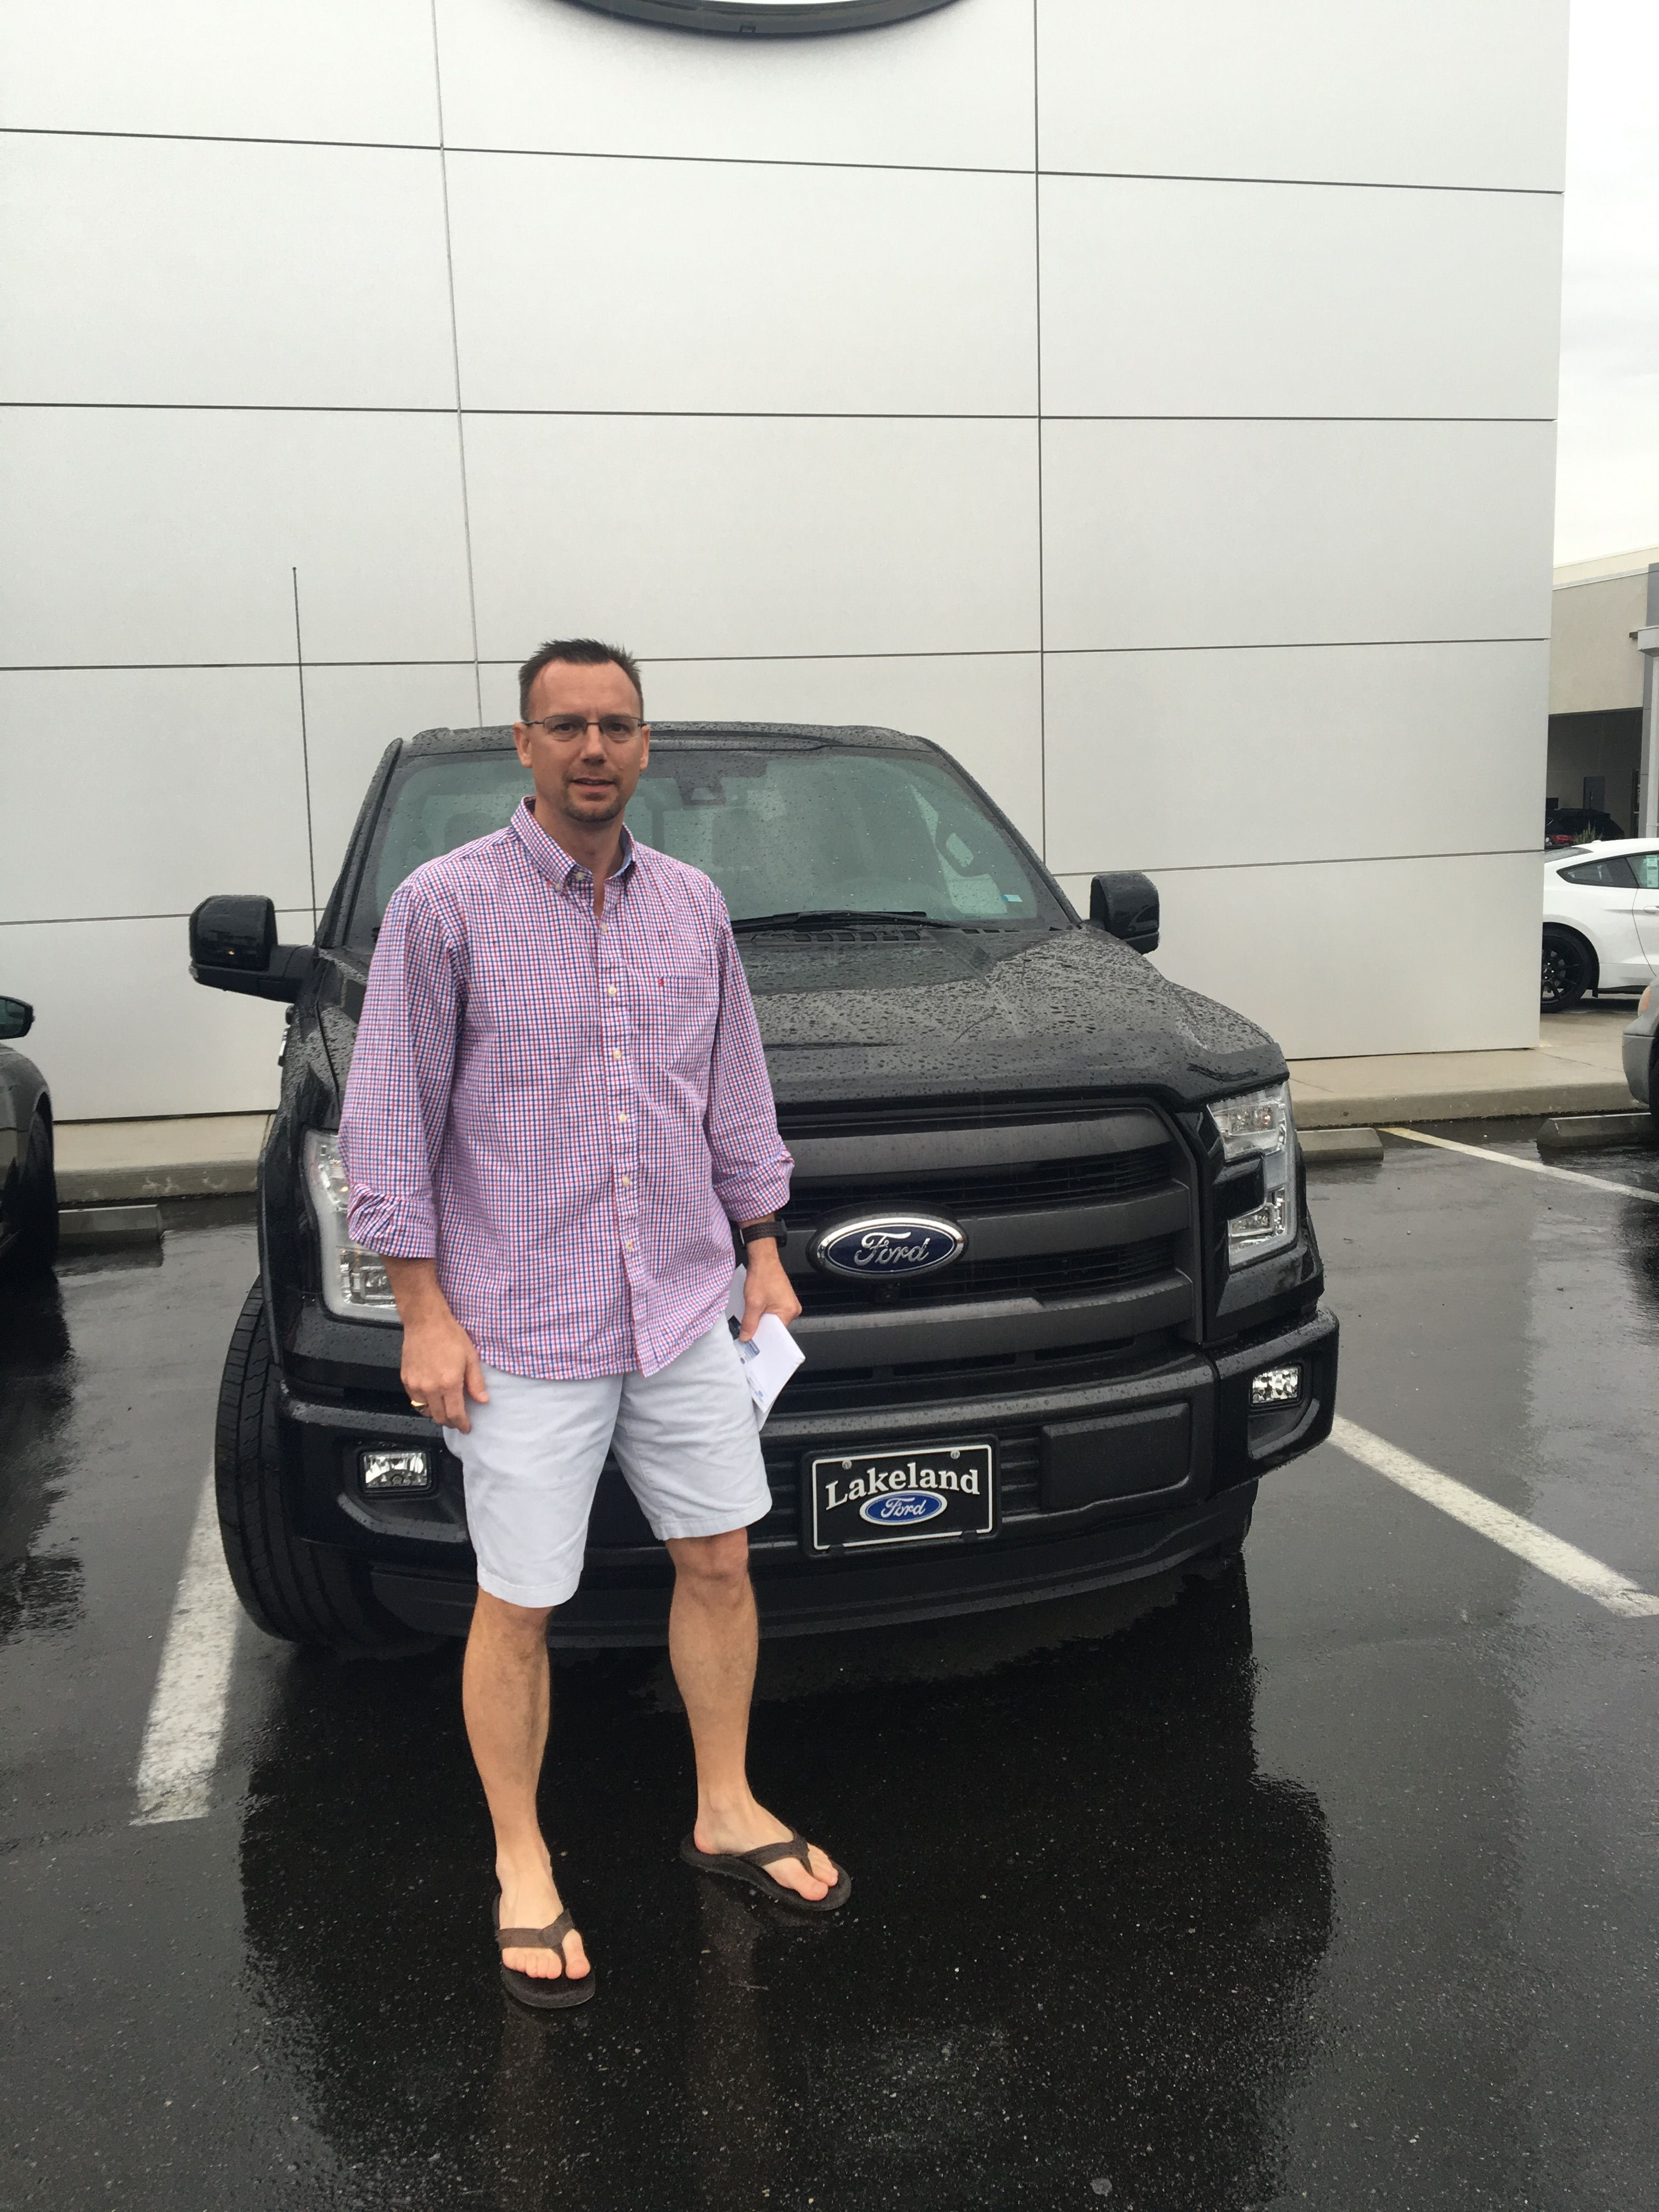 Michael Sherrod heard about Lakeland Automall online and decided to